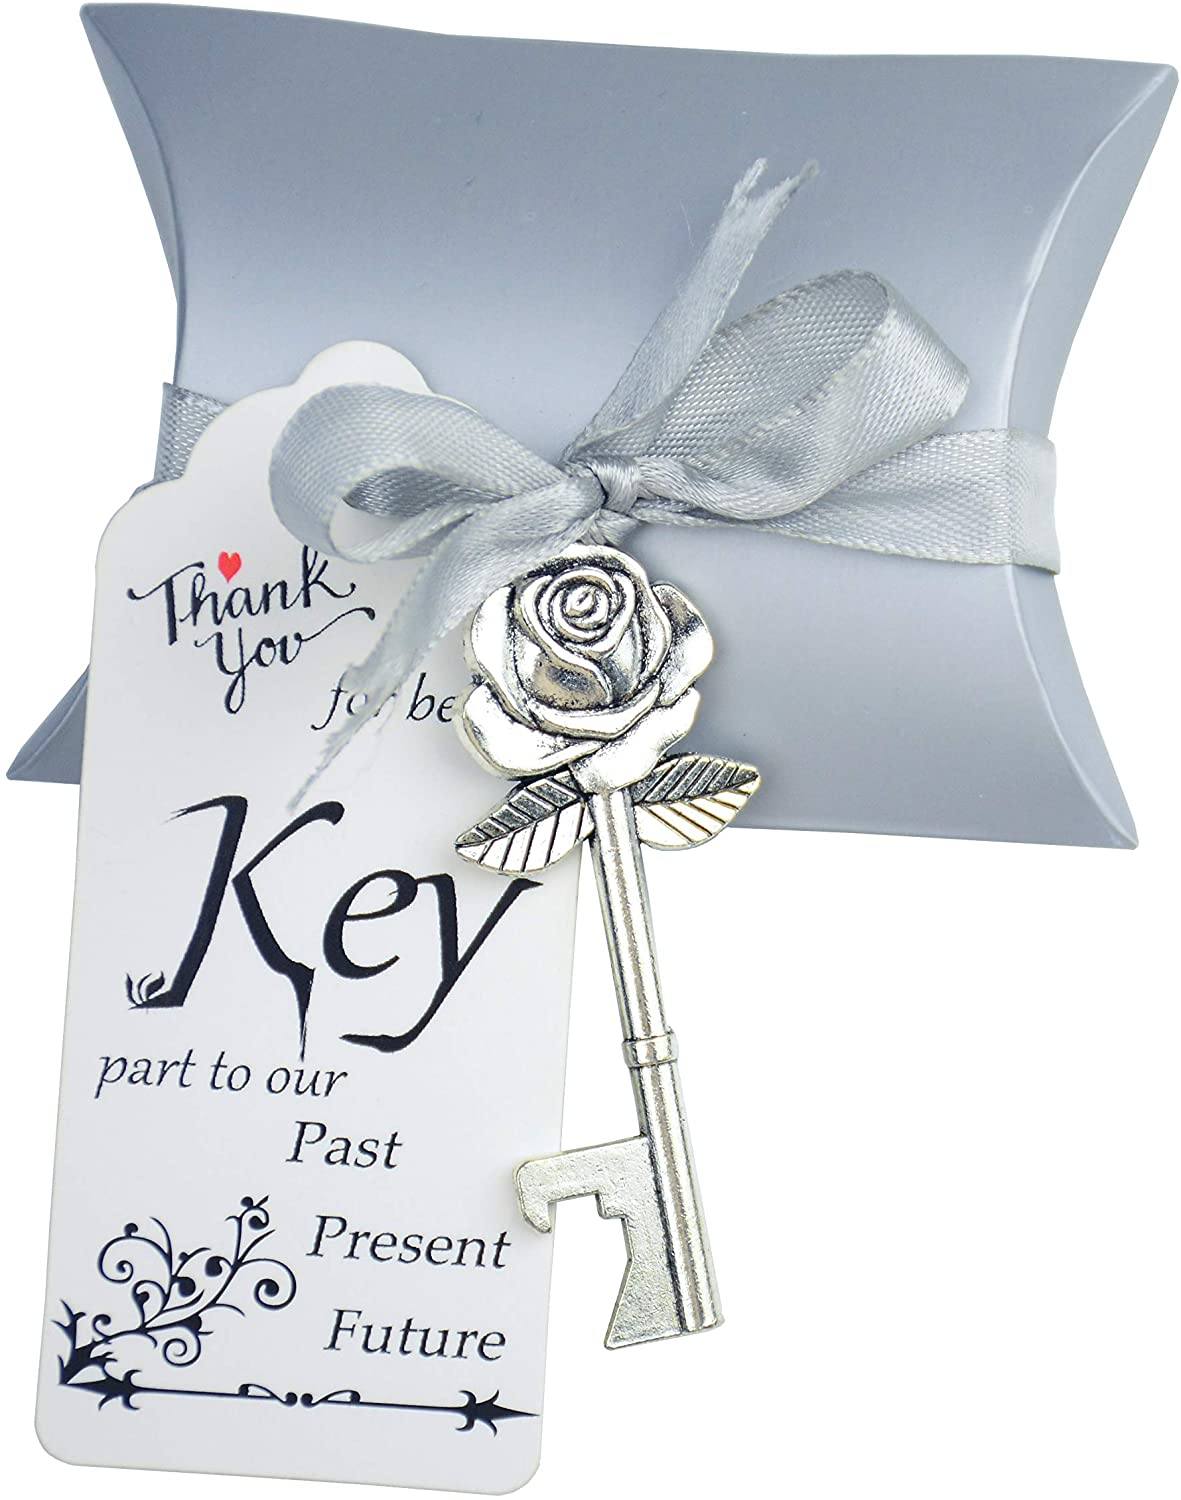 50 quality assurance Set Skeleton Rose Key Bottle All items free shipping Openers Box Candy with In Antiqu